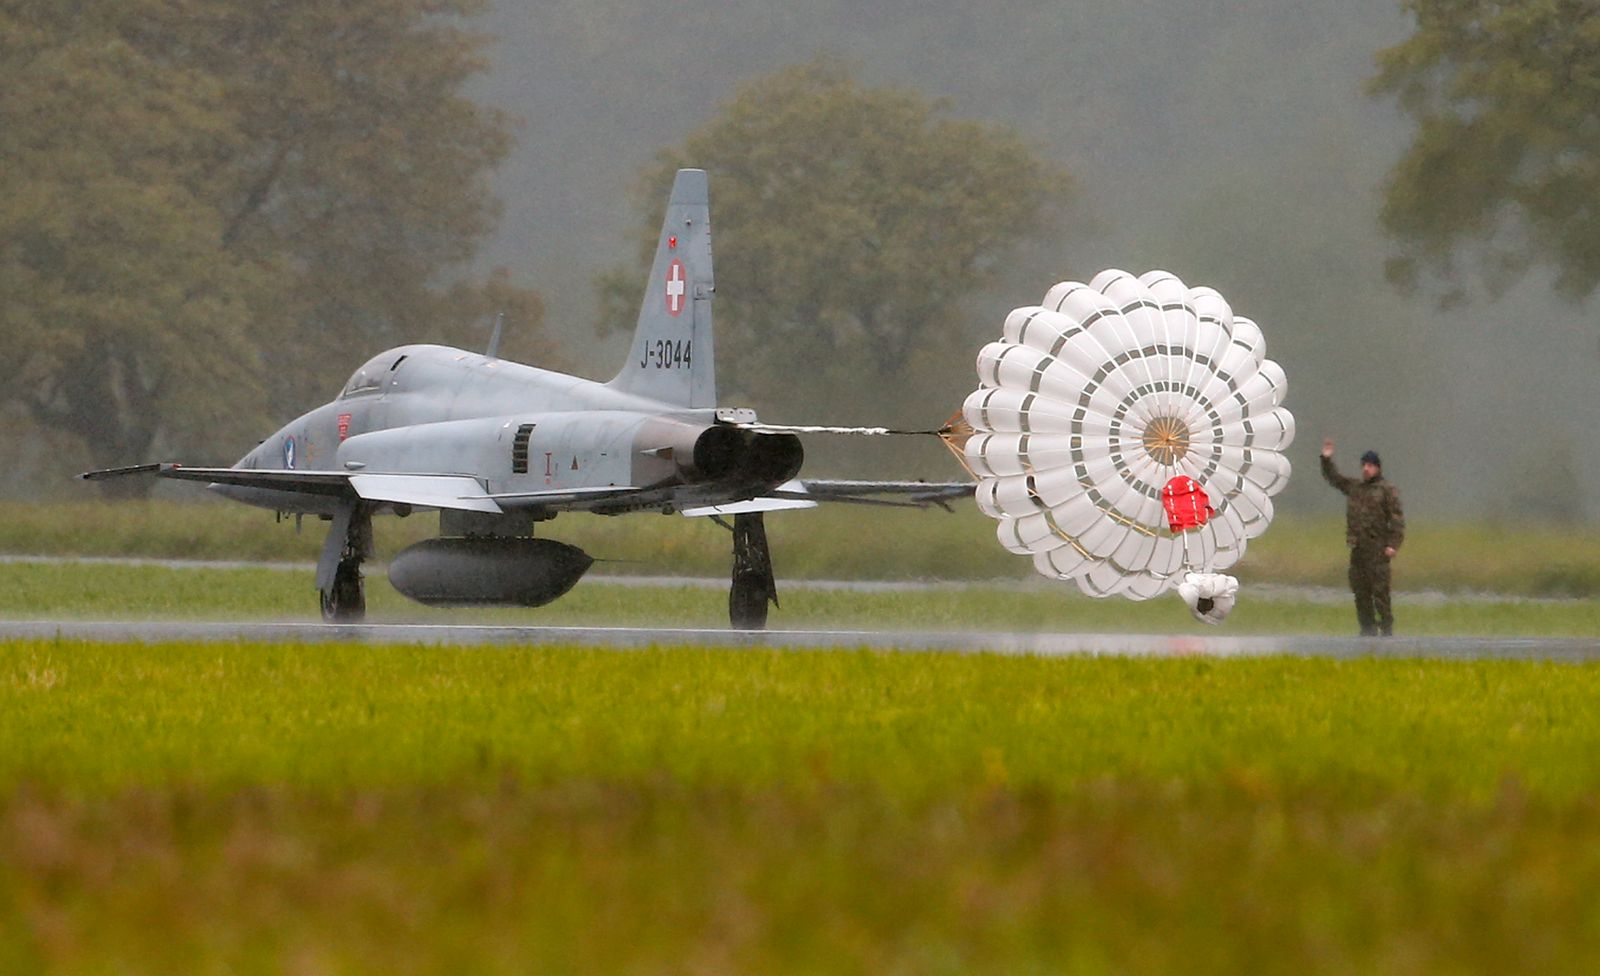 A Swiss F-5 Tiger fighter jet lands at the air base of the Swiss air force in Buochs